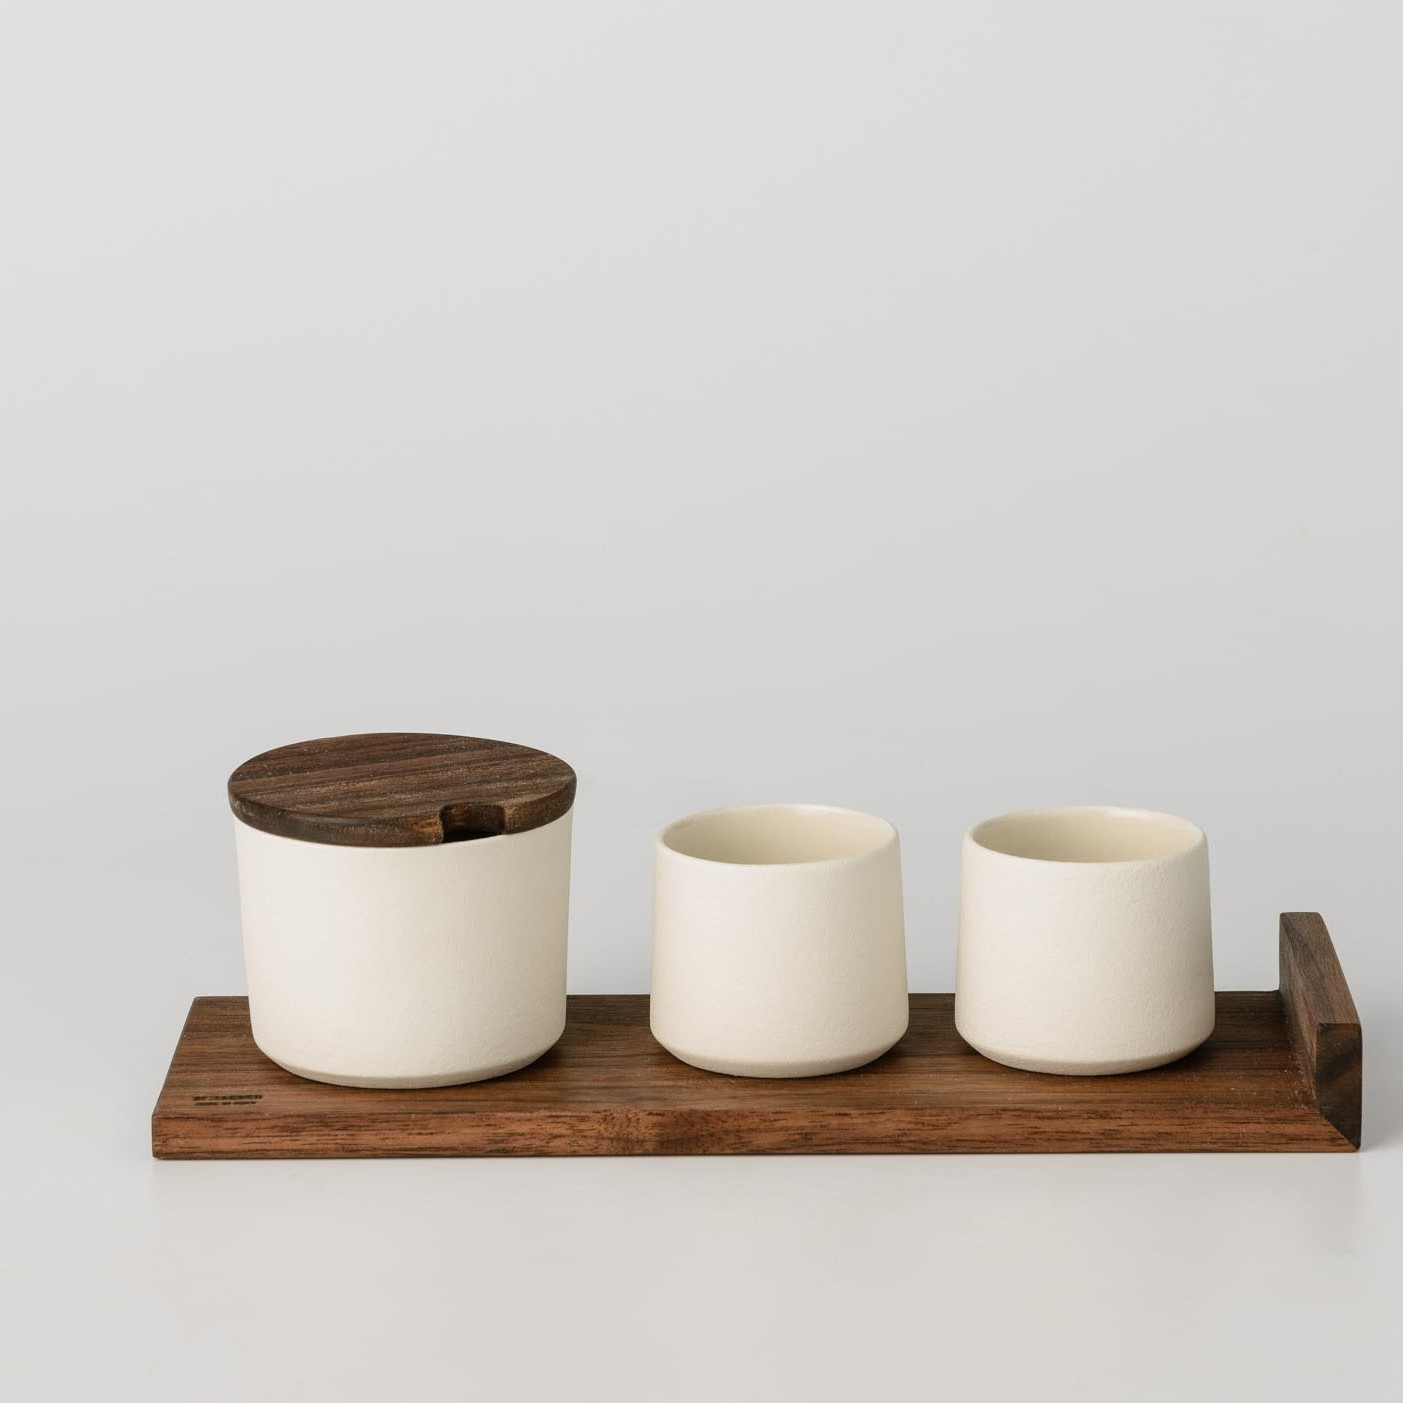 Ceramic Sugar Bowl With Wooden Lid And Small Ceramic Cups